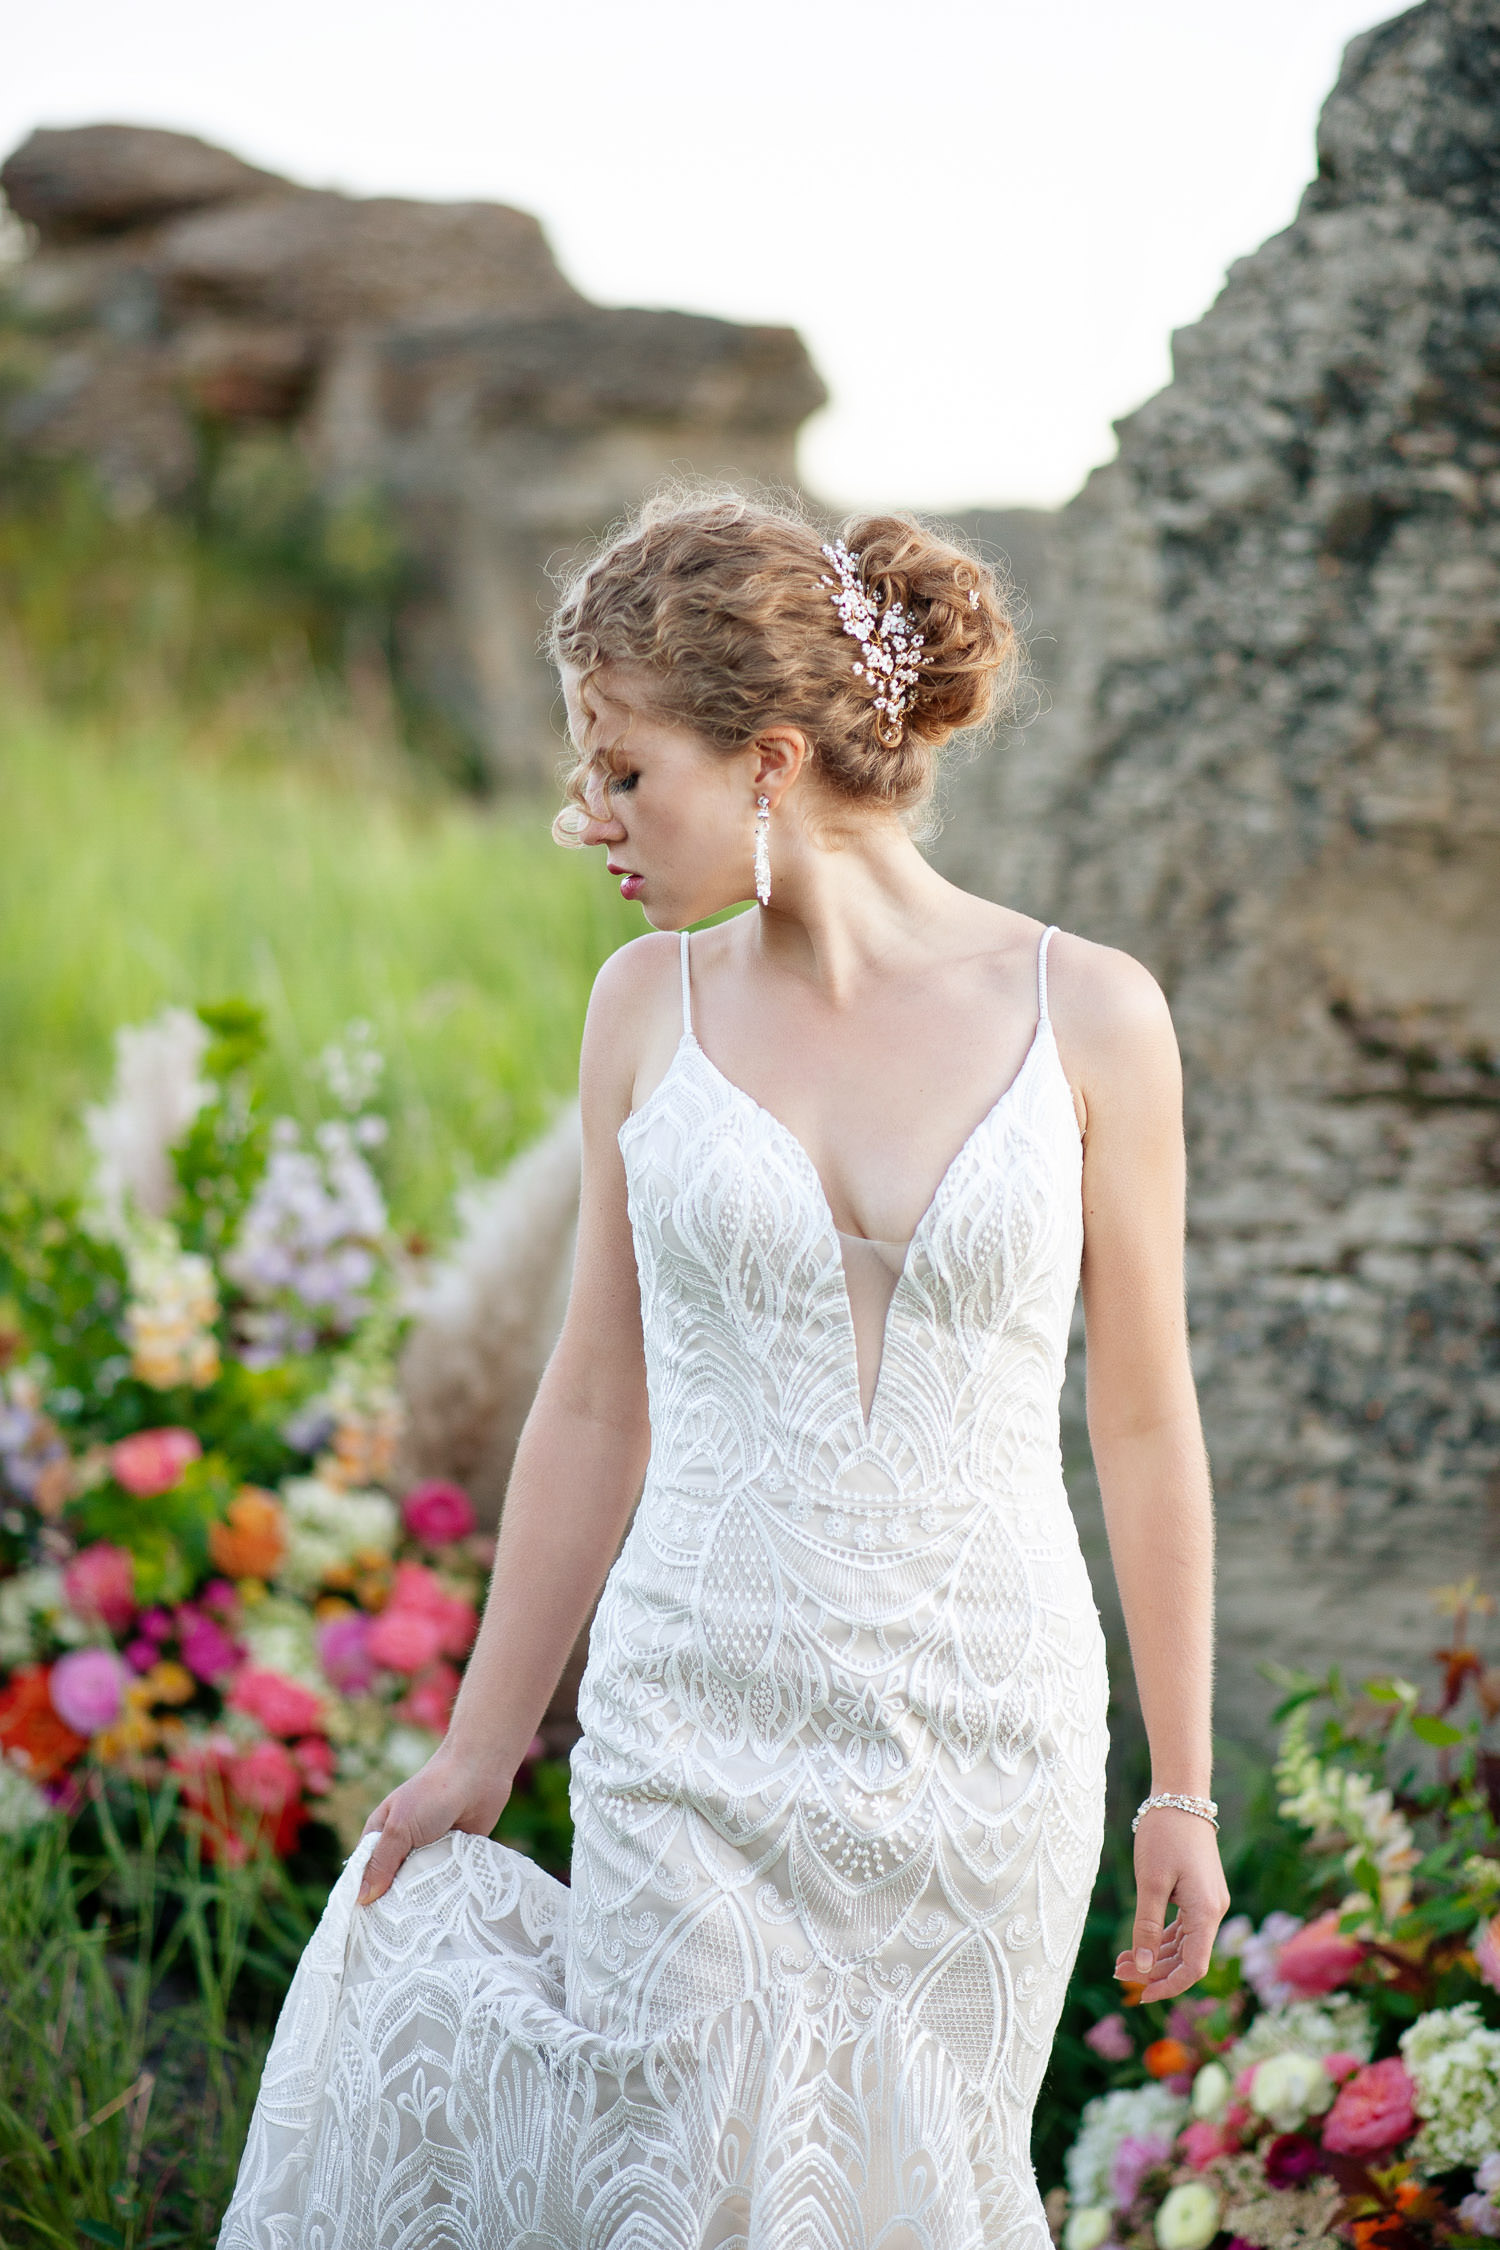 Bridal gown by Lis Simon captured by Tara Whittaker Photography